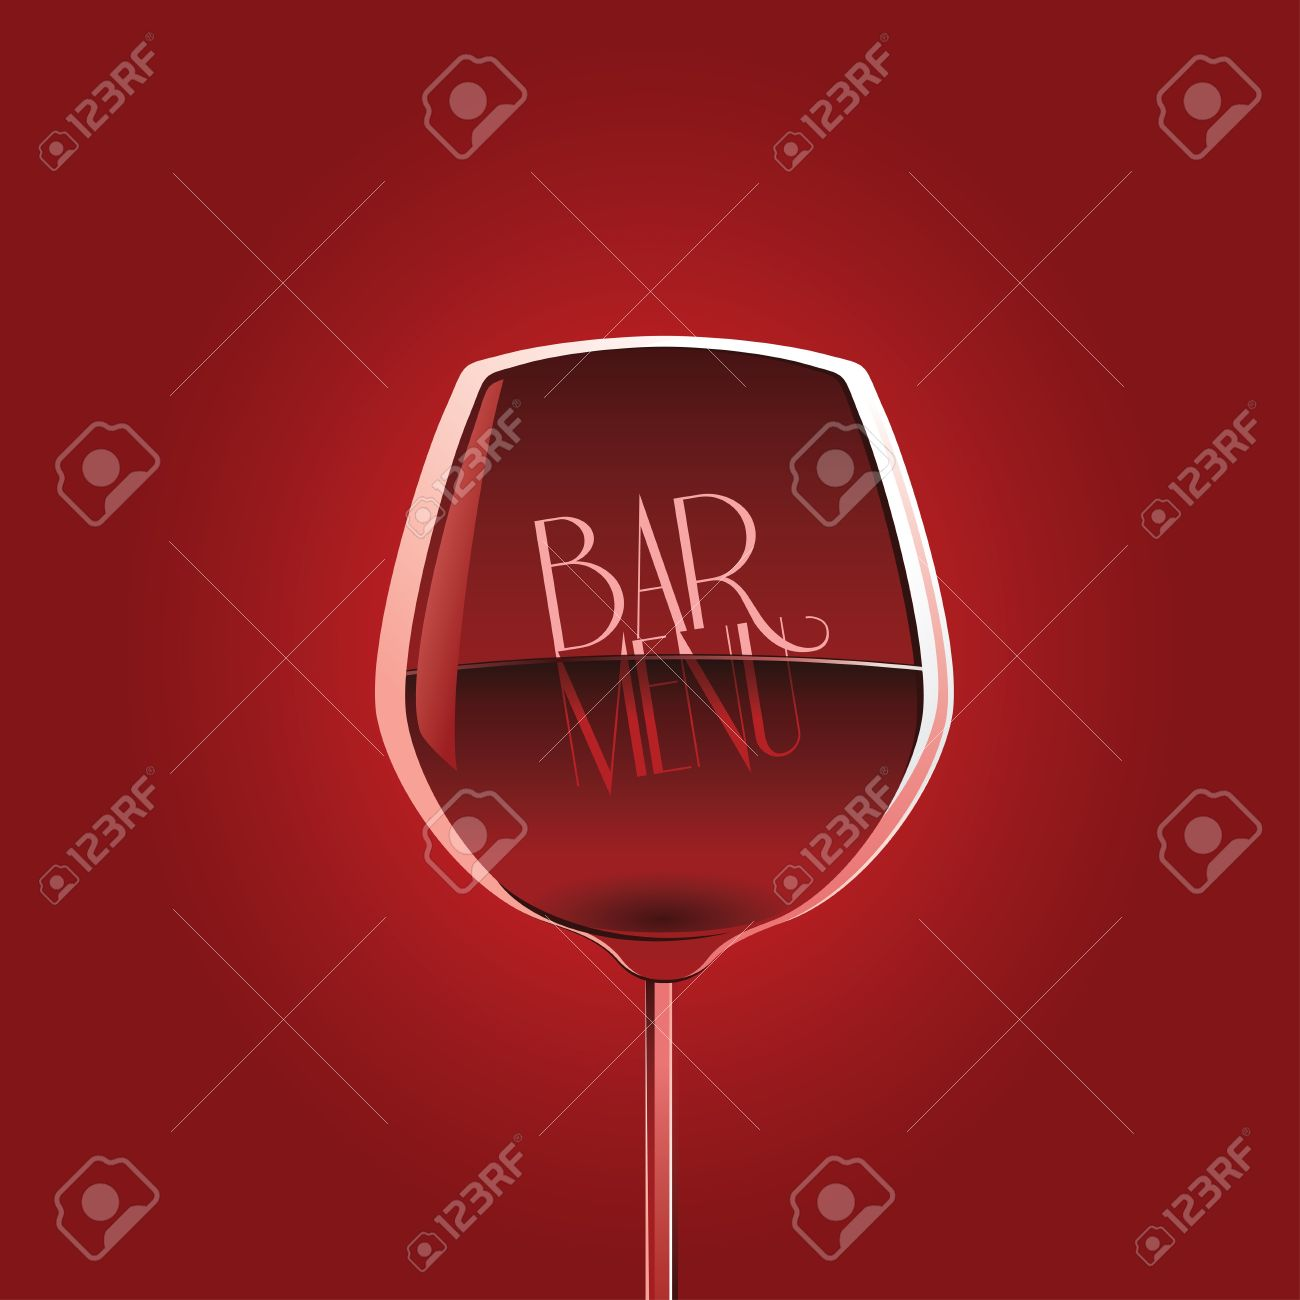 bar menu design template with wine glass on red background royalty